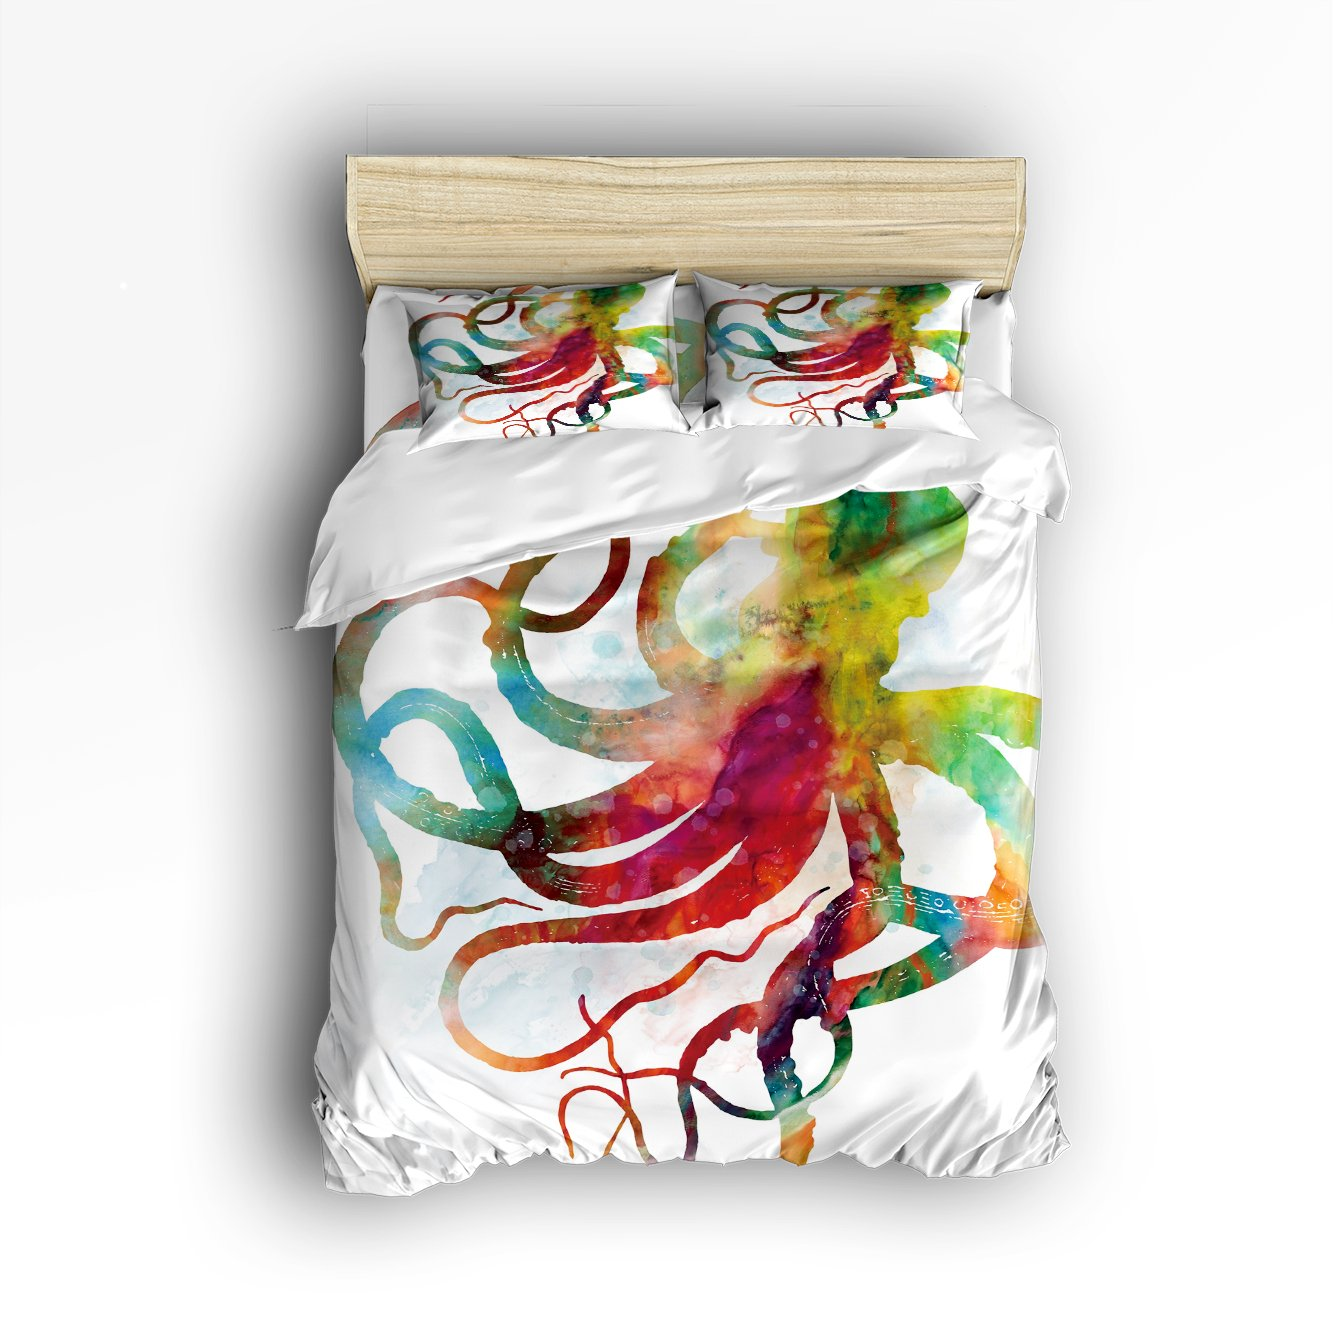 Beauty Decor Bedding 4 Piece bed Set Comfortable Soft Brushed Cotton, Elegant Abstract Colorful Octopus Art 4 Piece Bed Sheet Set Duvet Cover Flat Sheet and 2 Pillow Cases